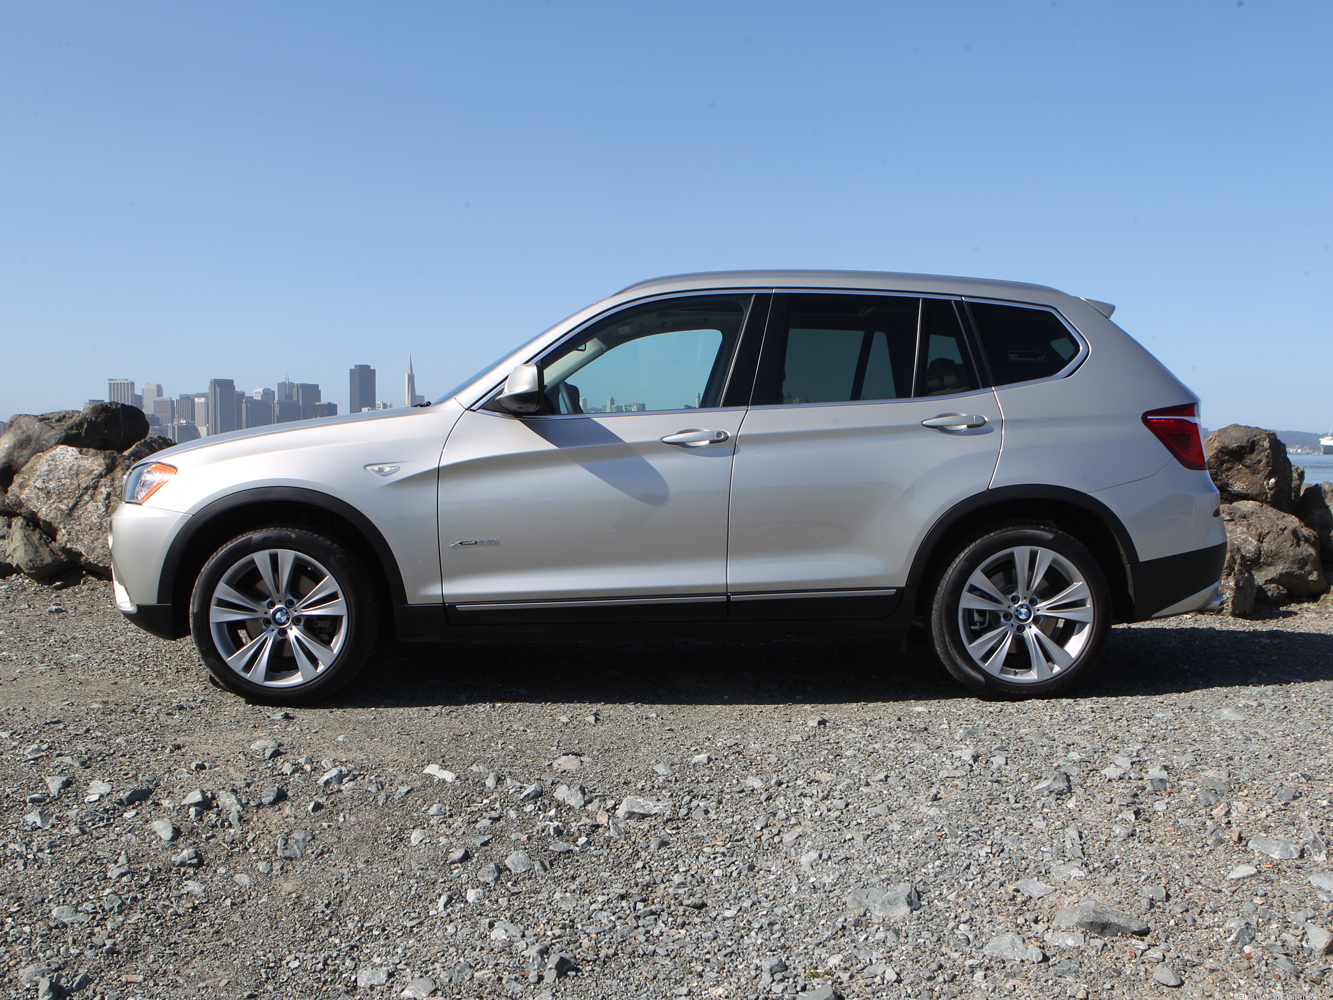 2011 bmw x3 xdrive35i review page 2 roadshow. Black Bedroom Furniture Sets. Home Design Ideas